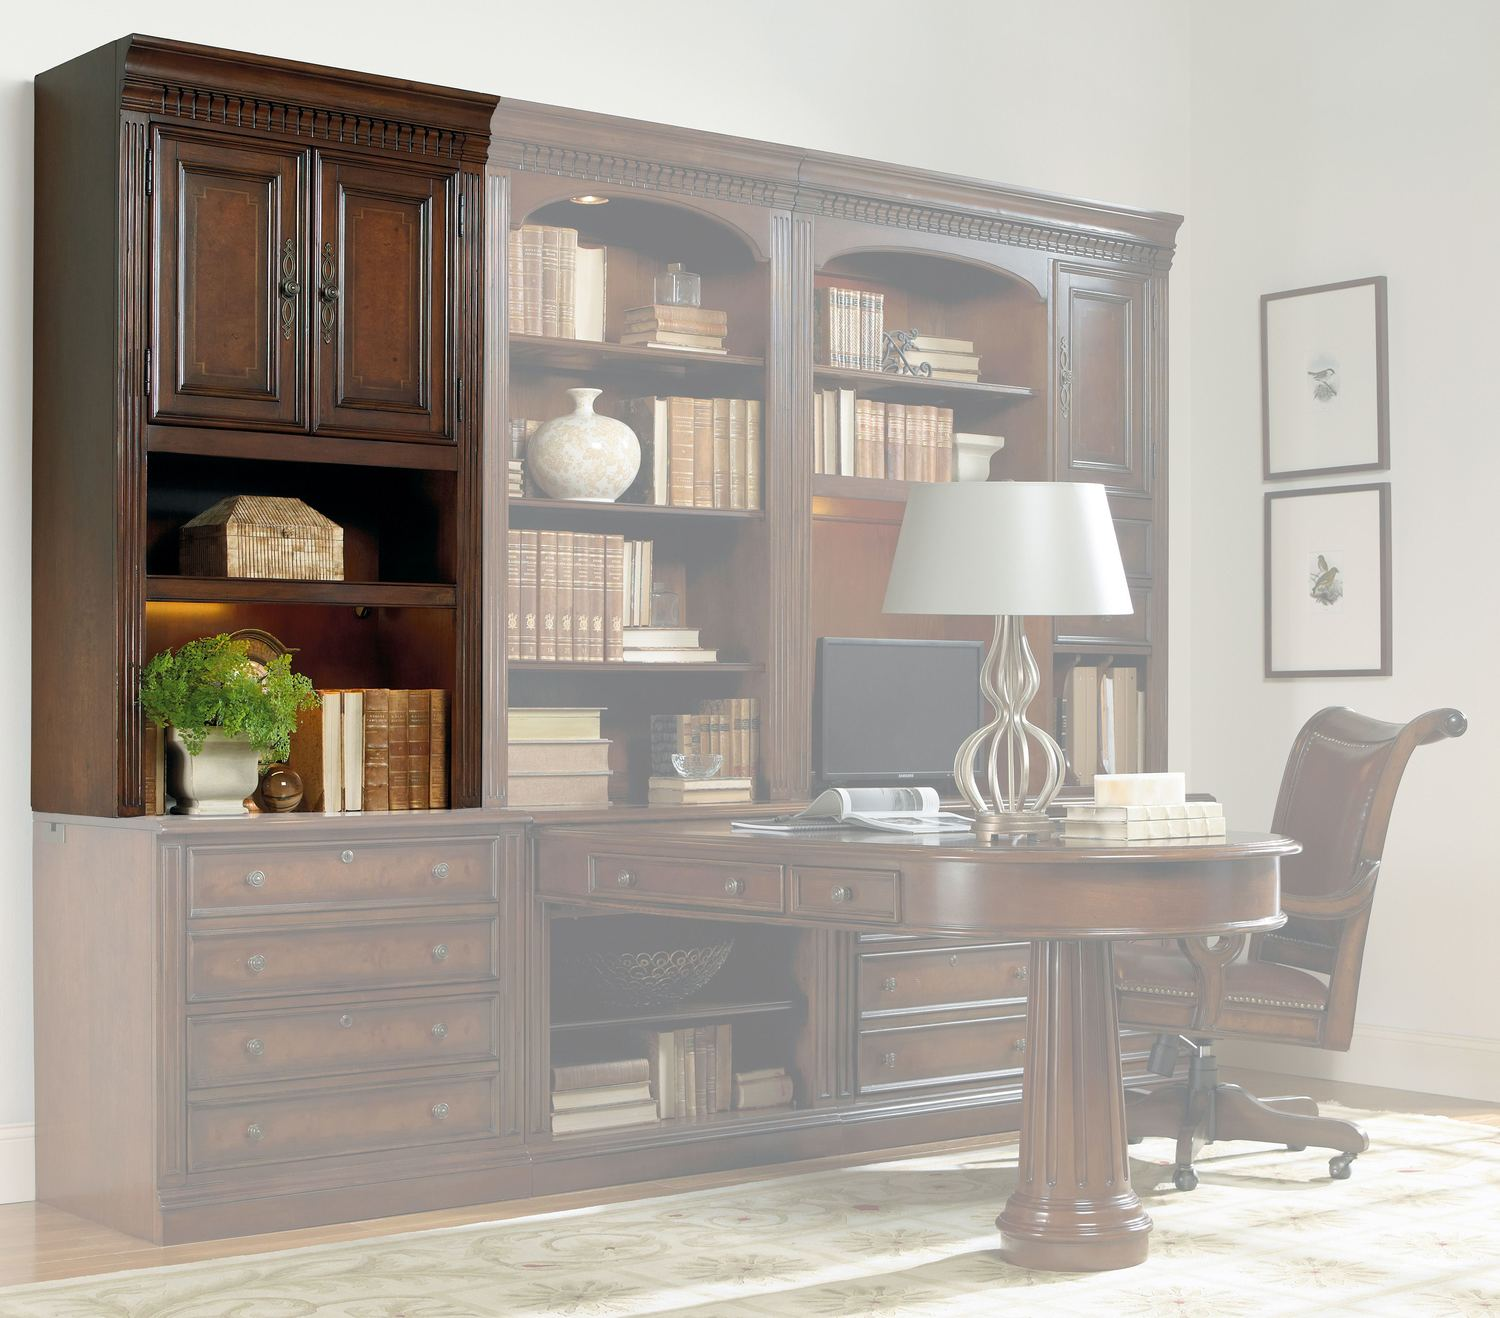 Hooker FurnitureHome Office European Renaissance Ii Door Hutch